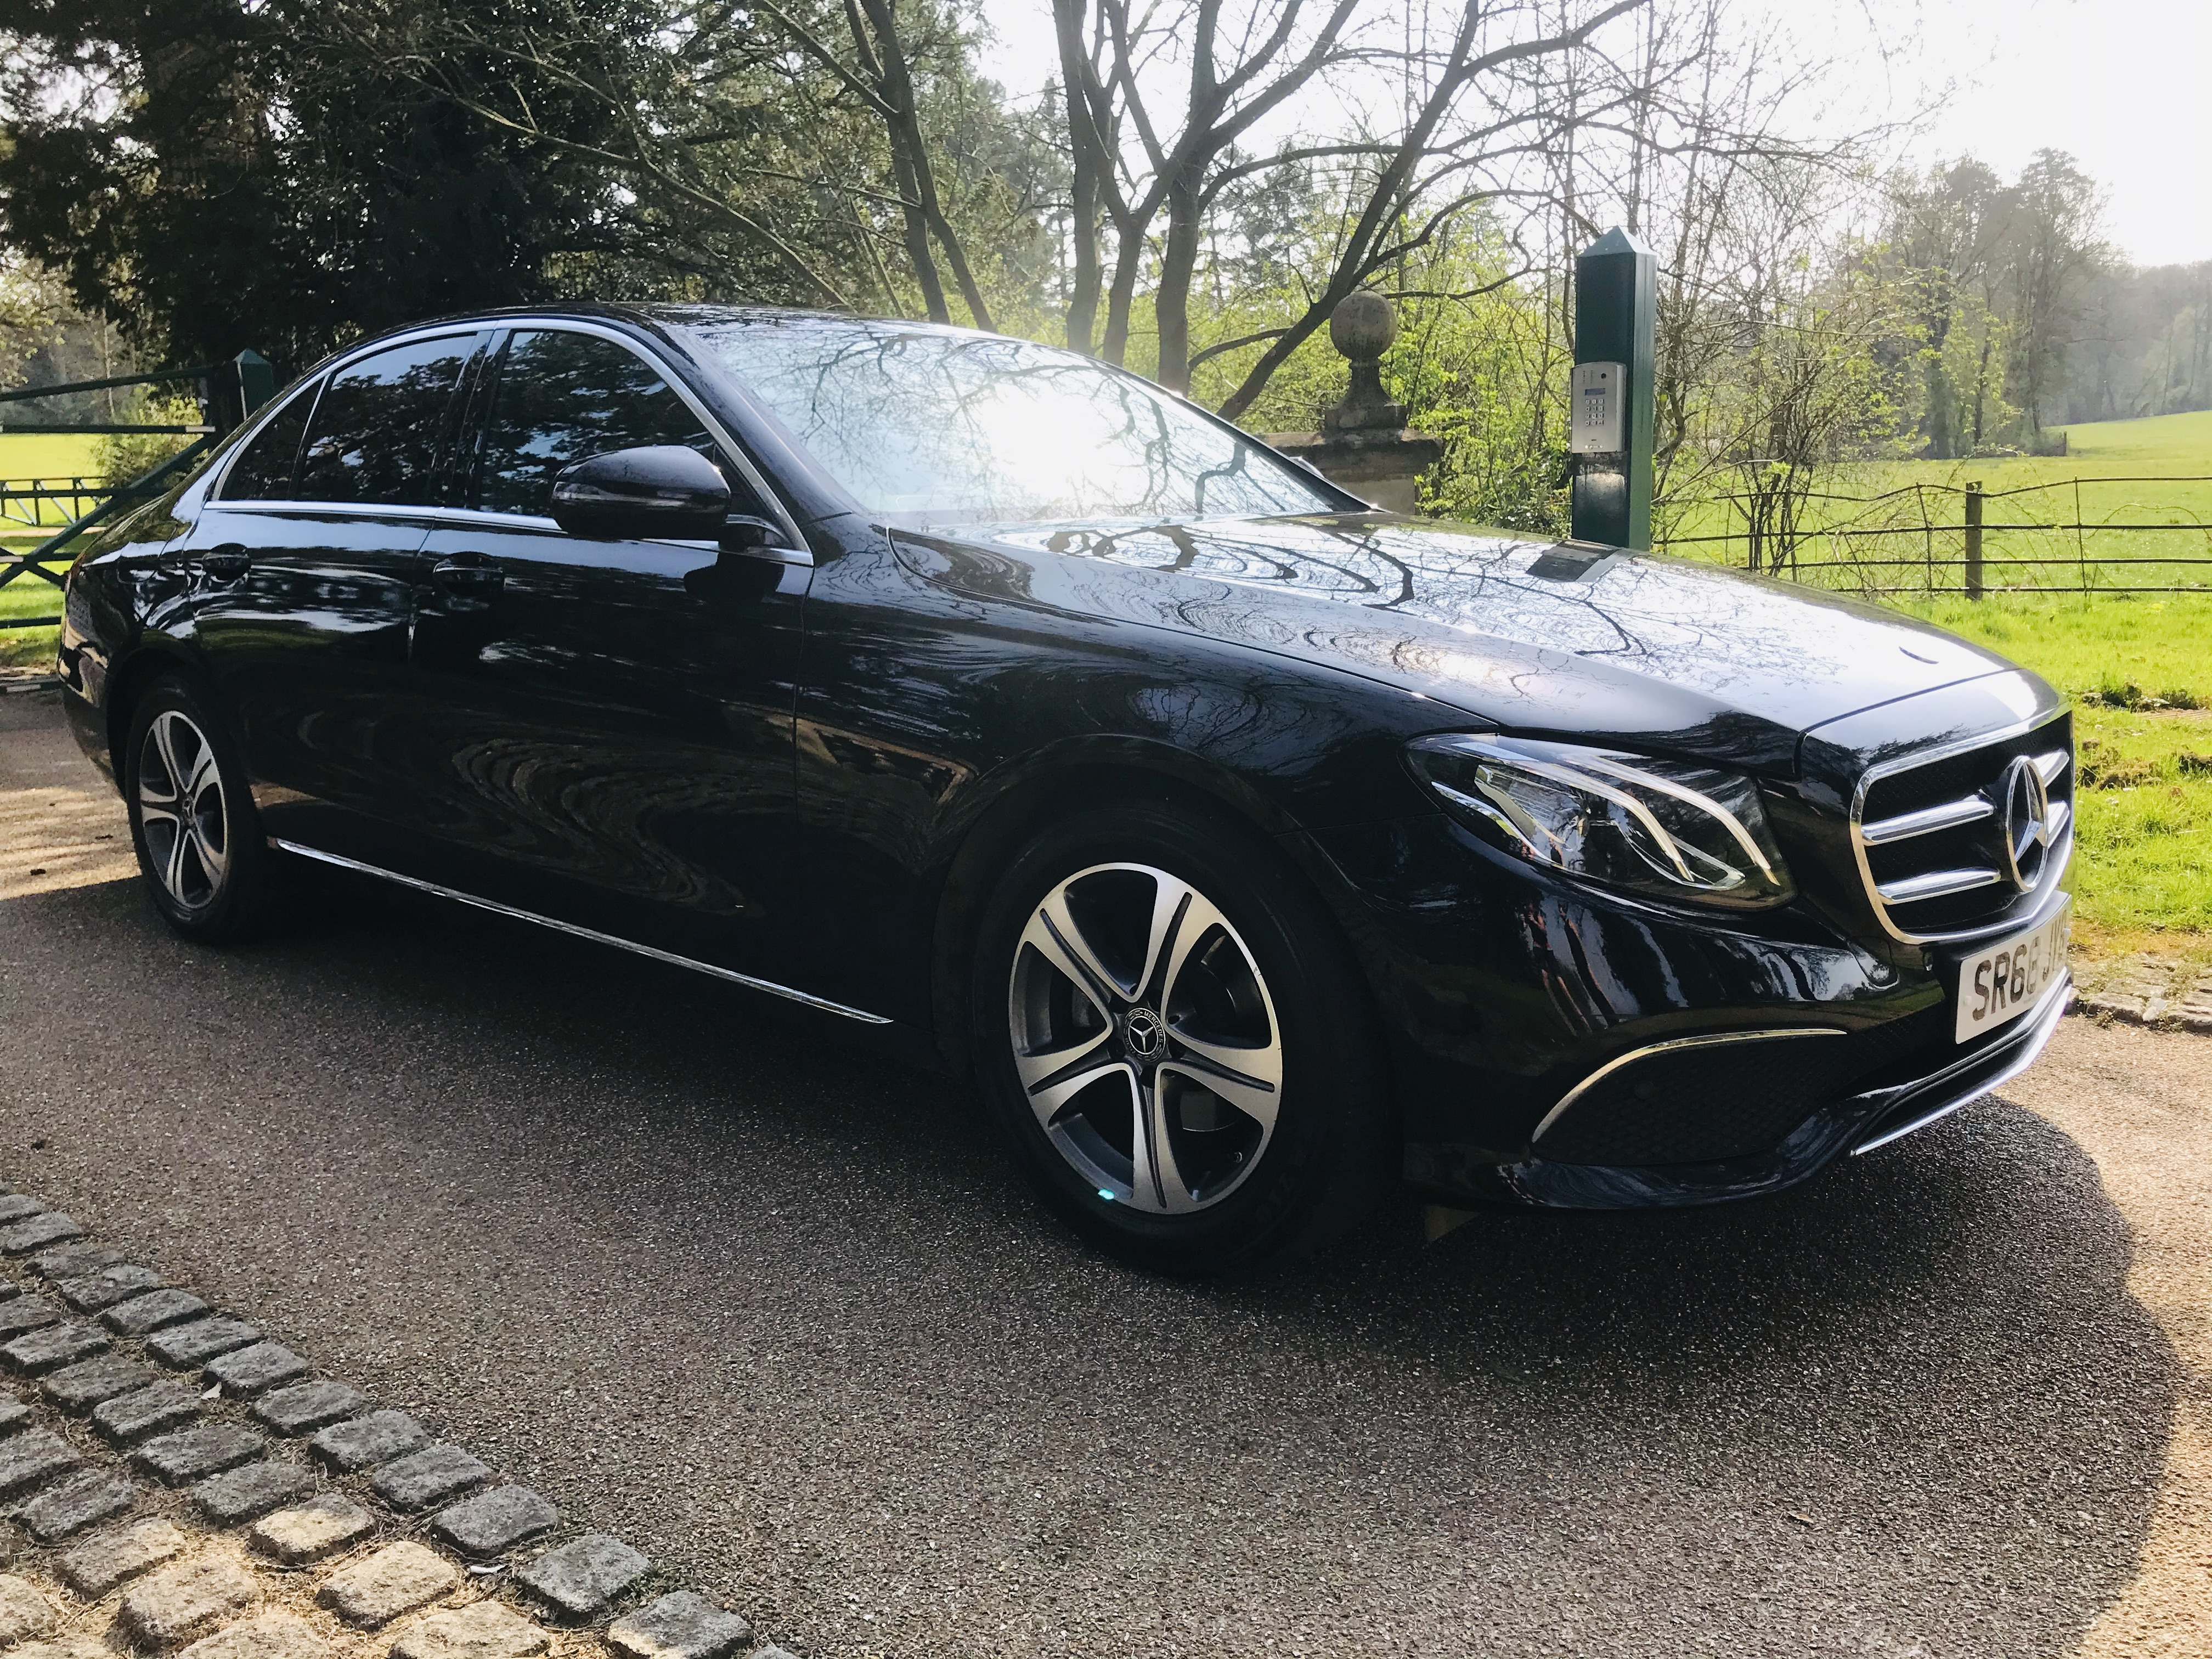 """On Sale MERCEDES E220d """"SPECIAL EQUIPMENT"""" 9G TRONIC (2019 MODEL) 1 OWNER - SAT NAV - LEATHER - WOW! - Image 2 of 26"""